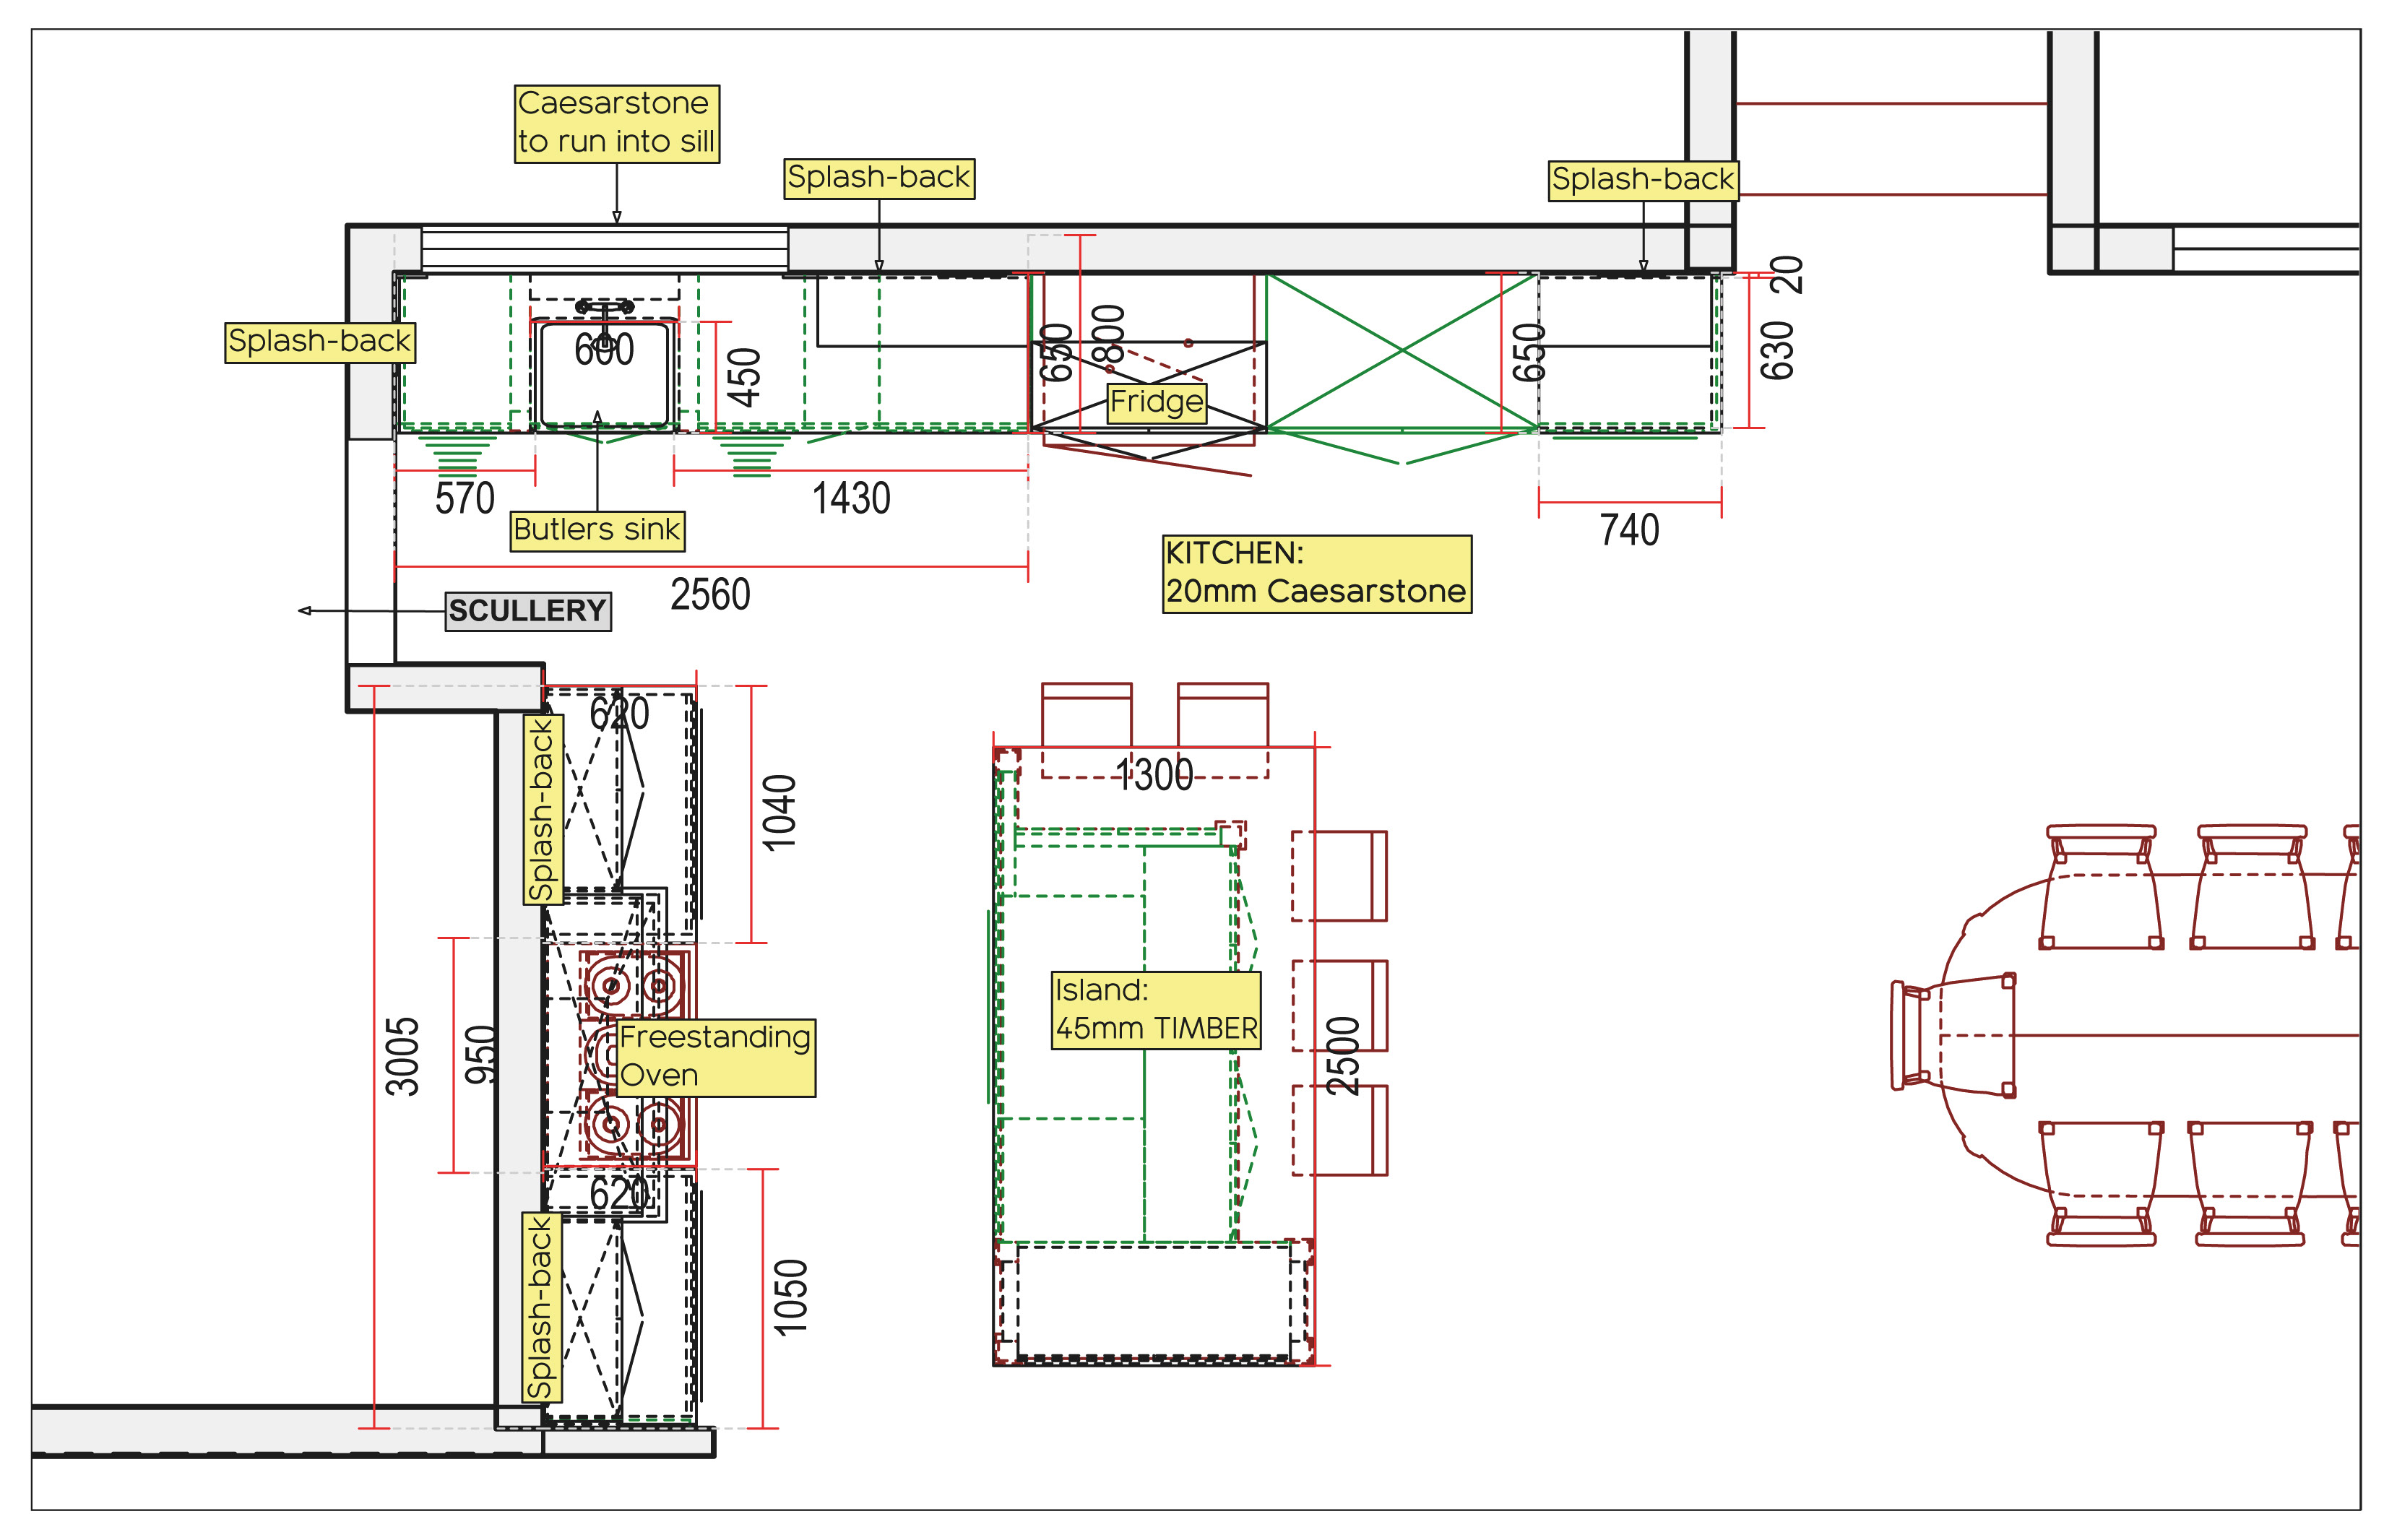 A closer look at the technical aspect of Beth's kitchen design for the Mckenzie family.